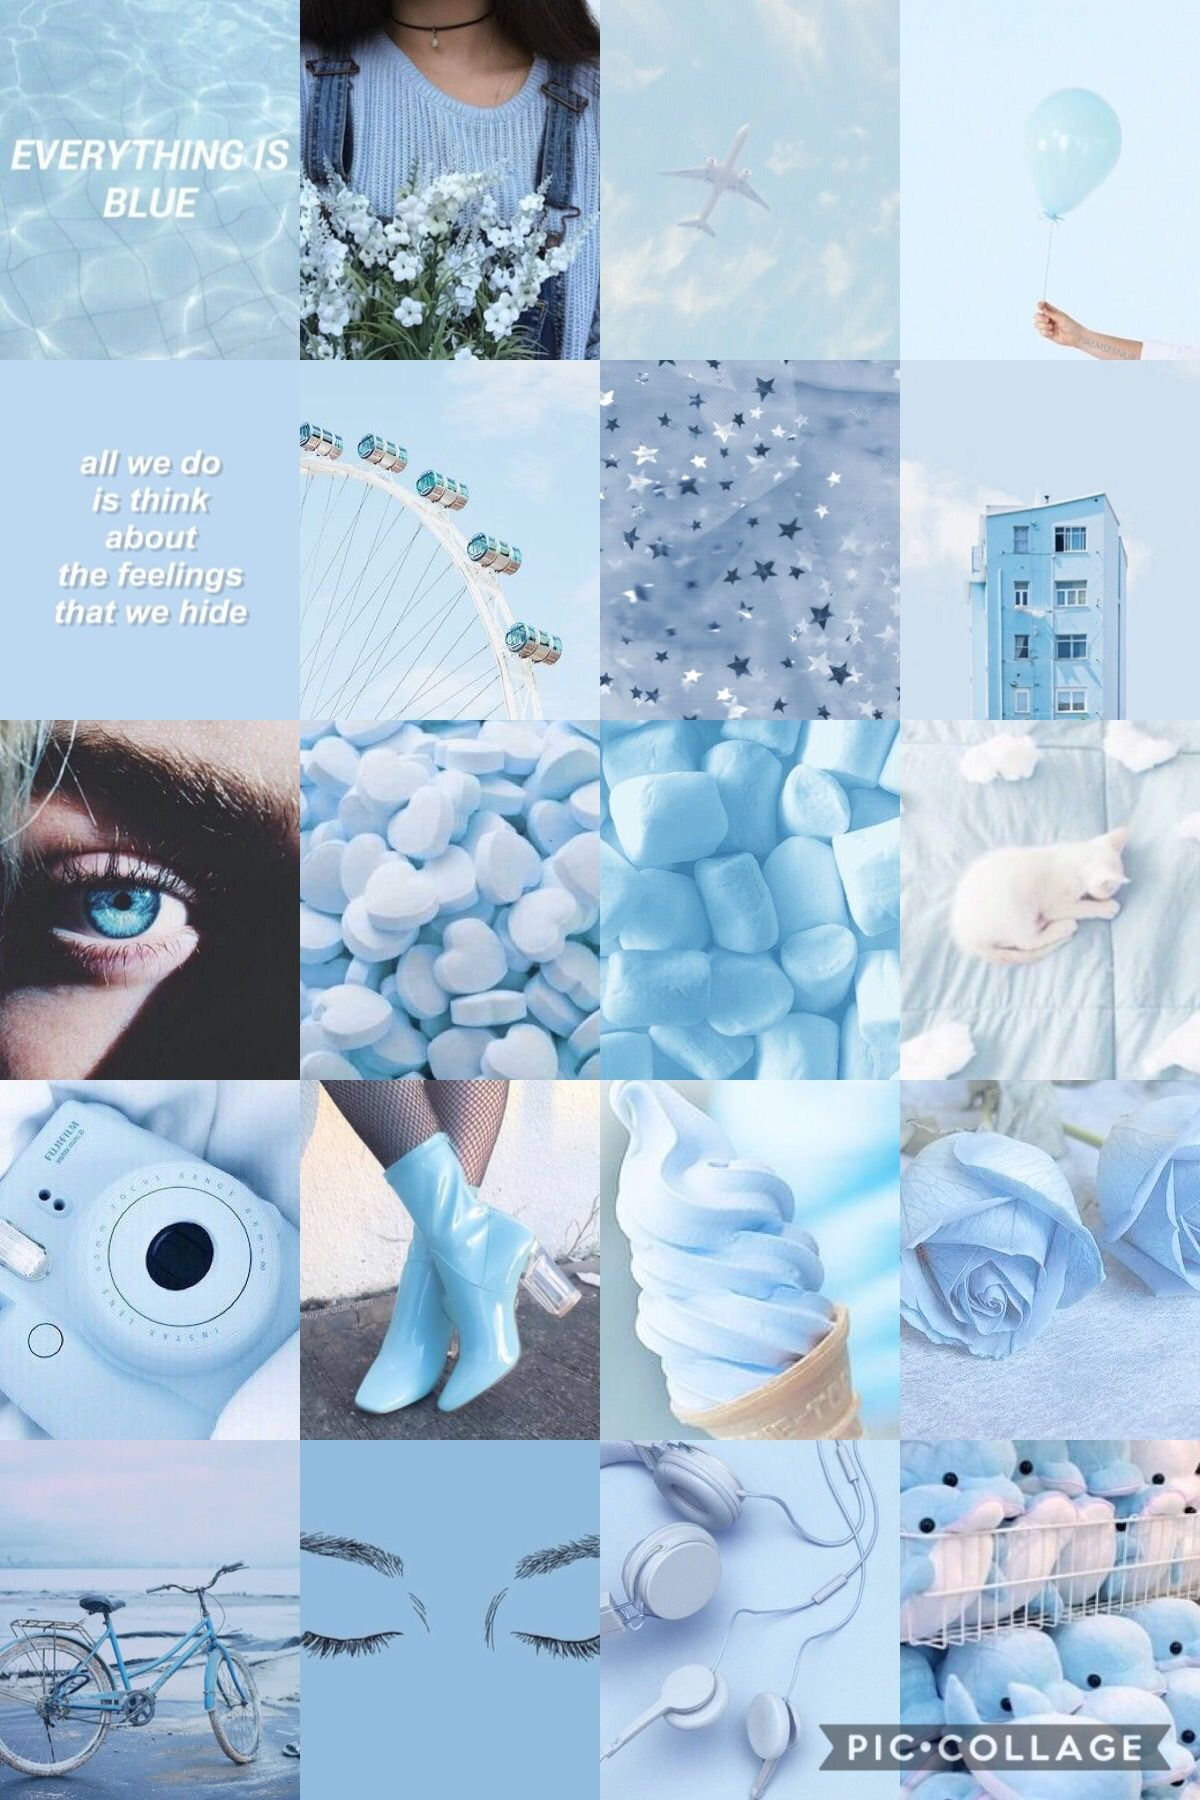 Blue Aesthetic Background Blue Collage Wallpaper Tell us the truth, can you spend even a day without looking at your phone? blue aesthetic background blue collage